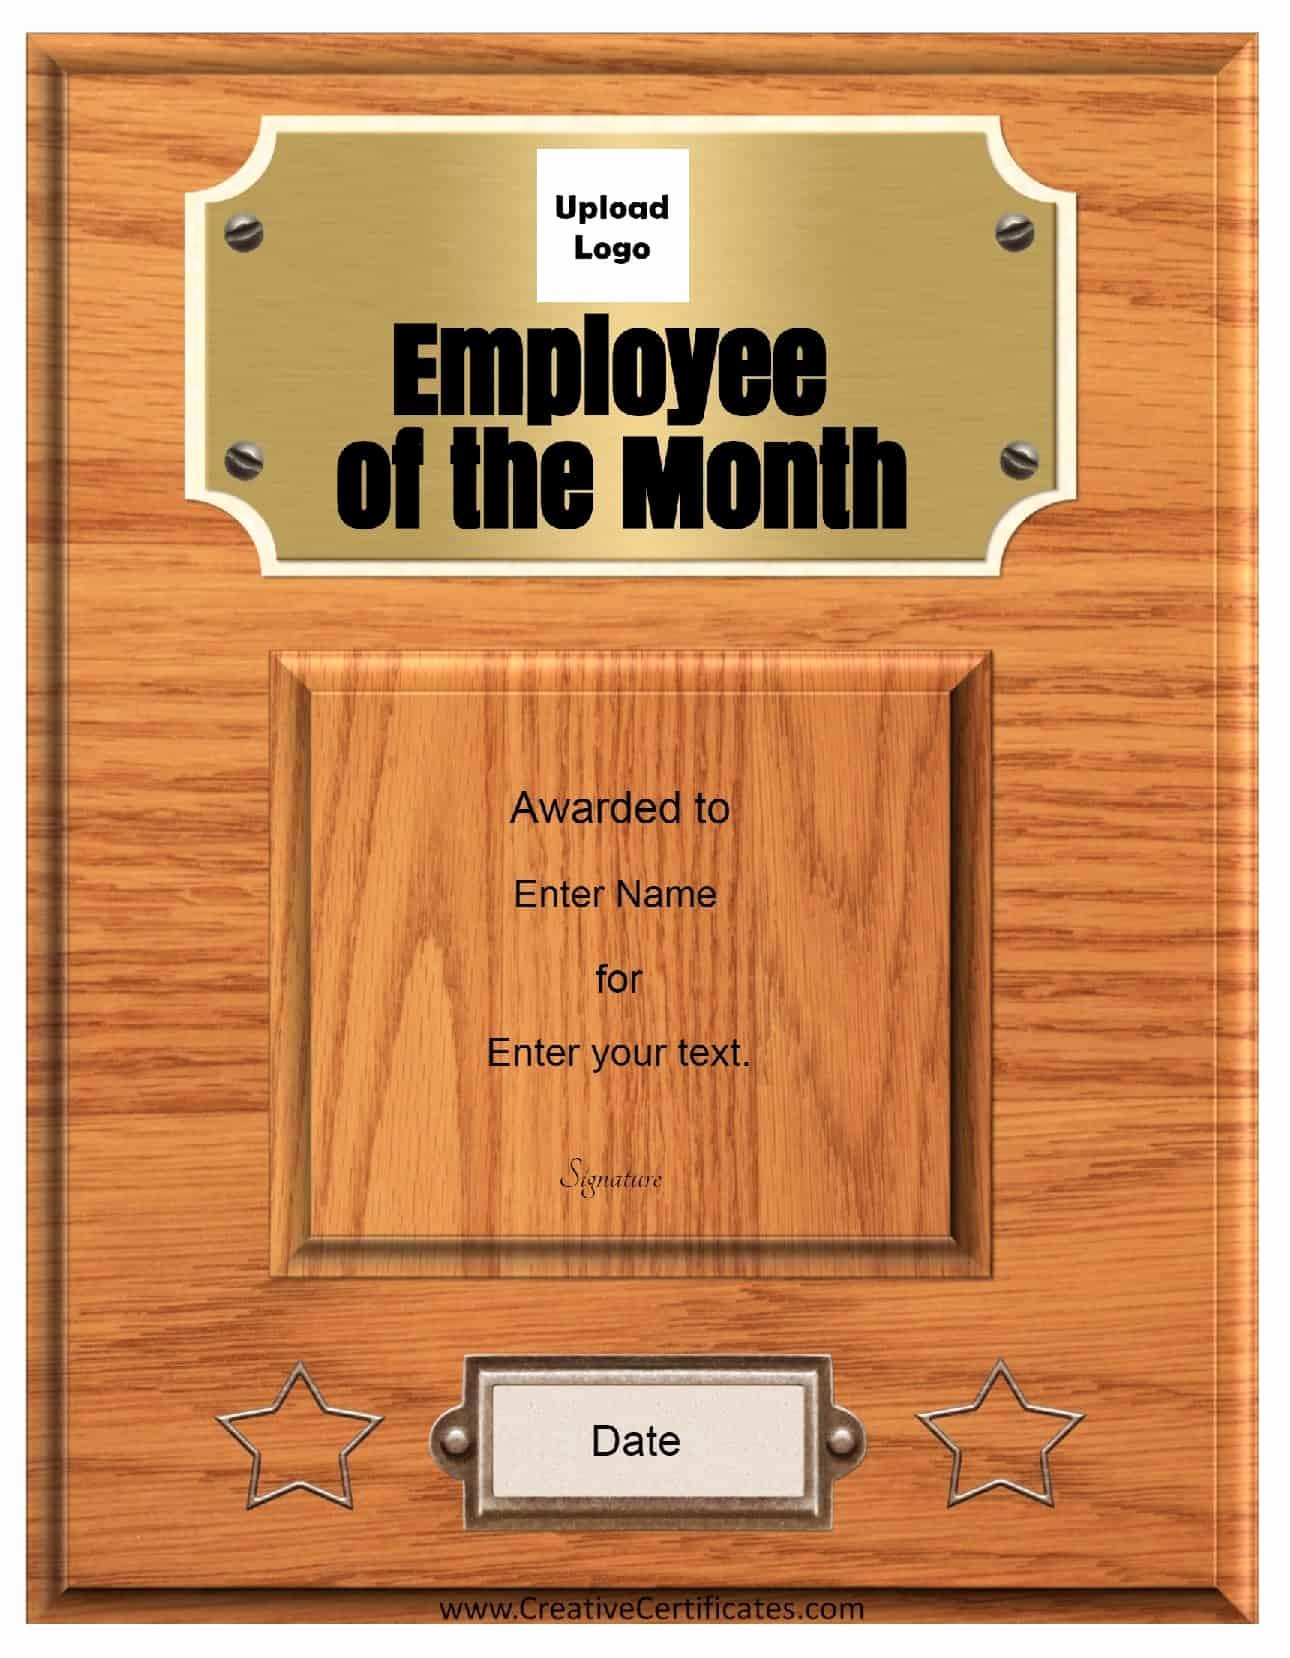 Employee Of the Month Awards Templates Inspirational Free Custom Employee Of the Month Certificate